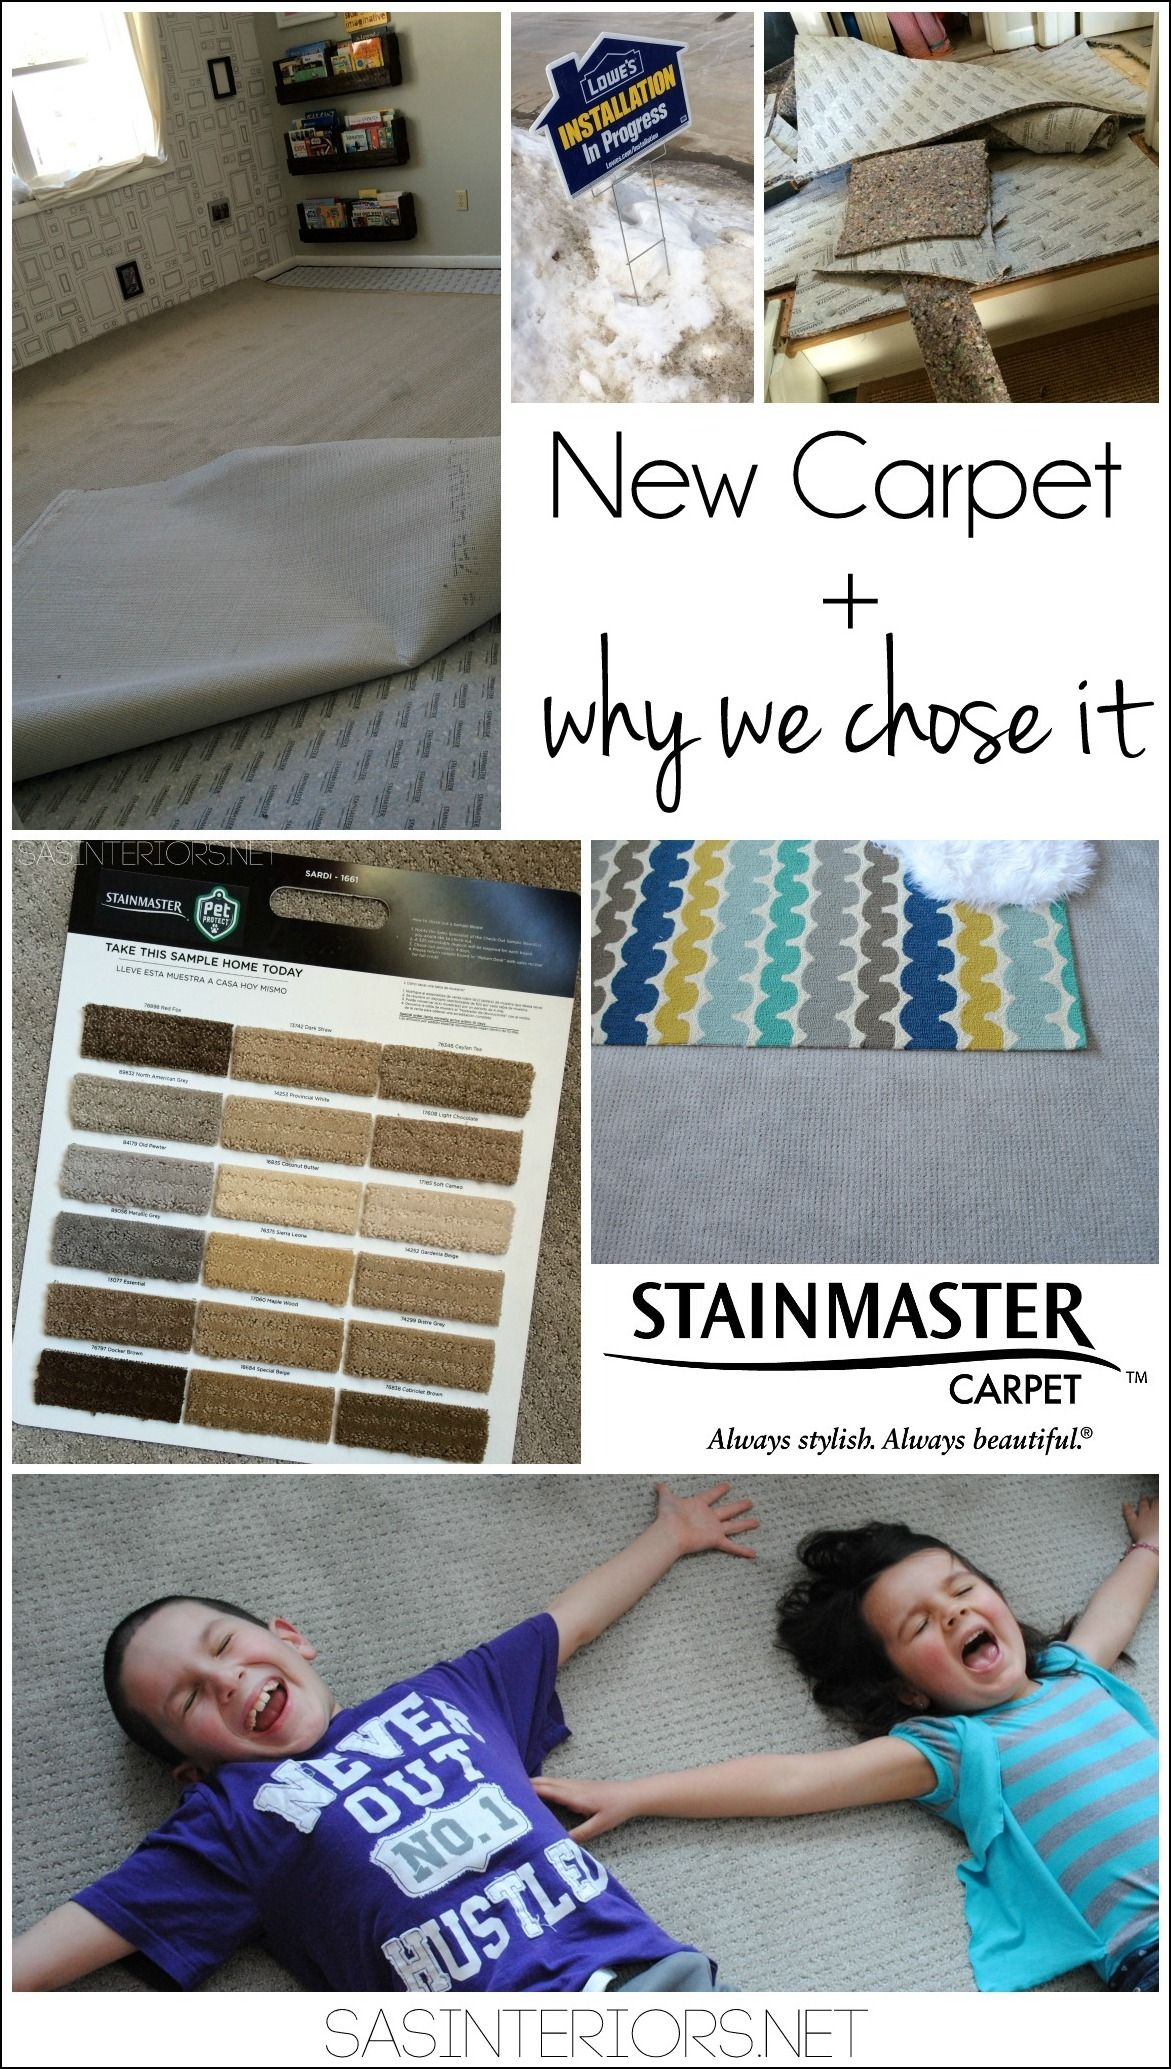 New Stainmaster PetProtect Carpet for the 2nd floor